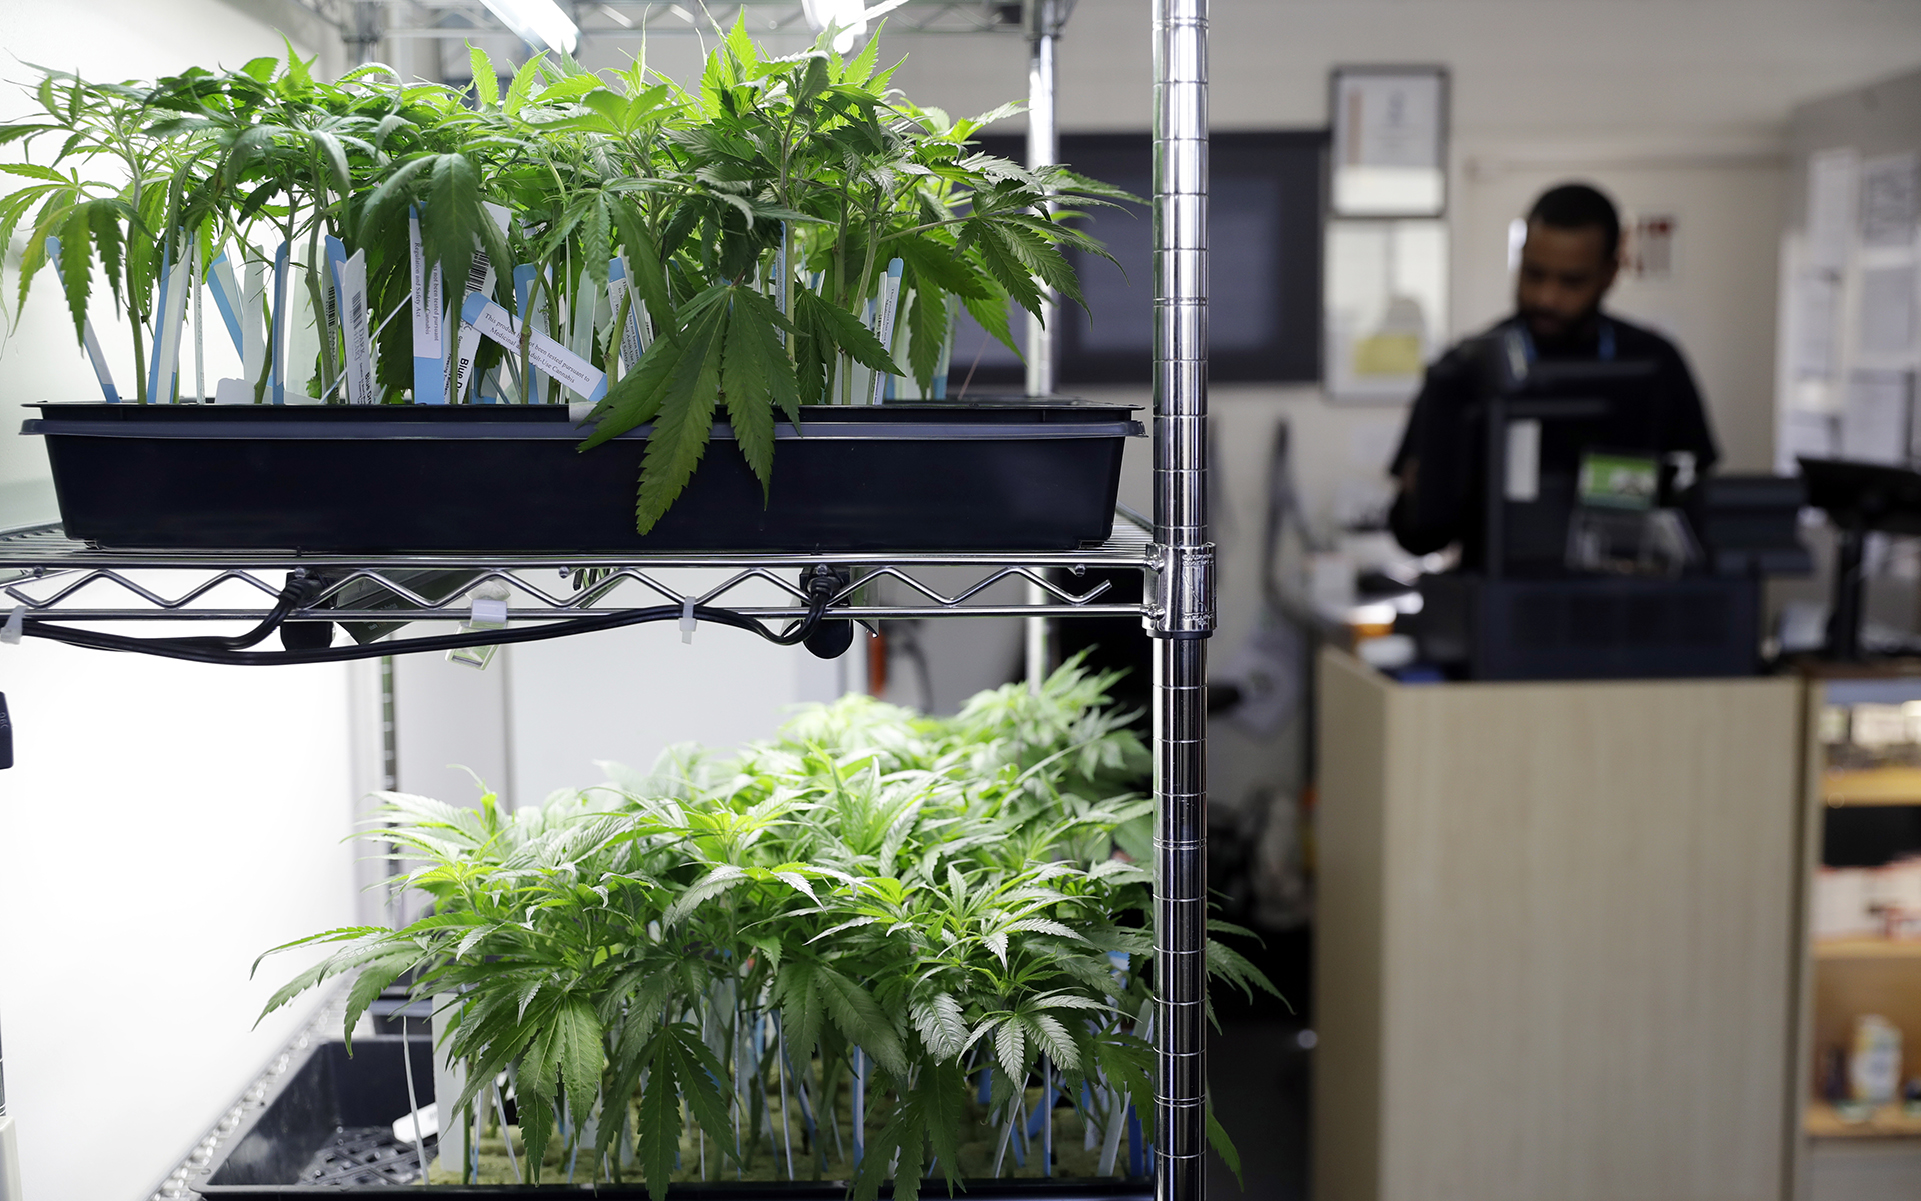 California City Cuts Cannabis Taxes, Others Expected to Follow